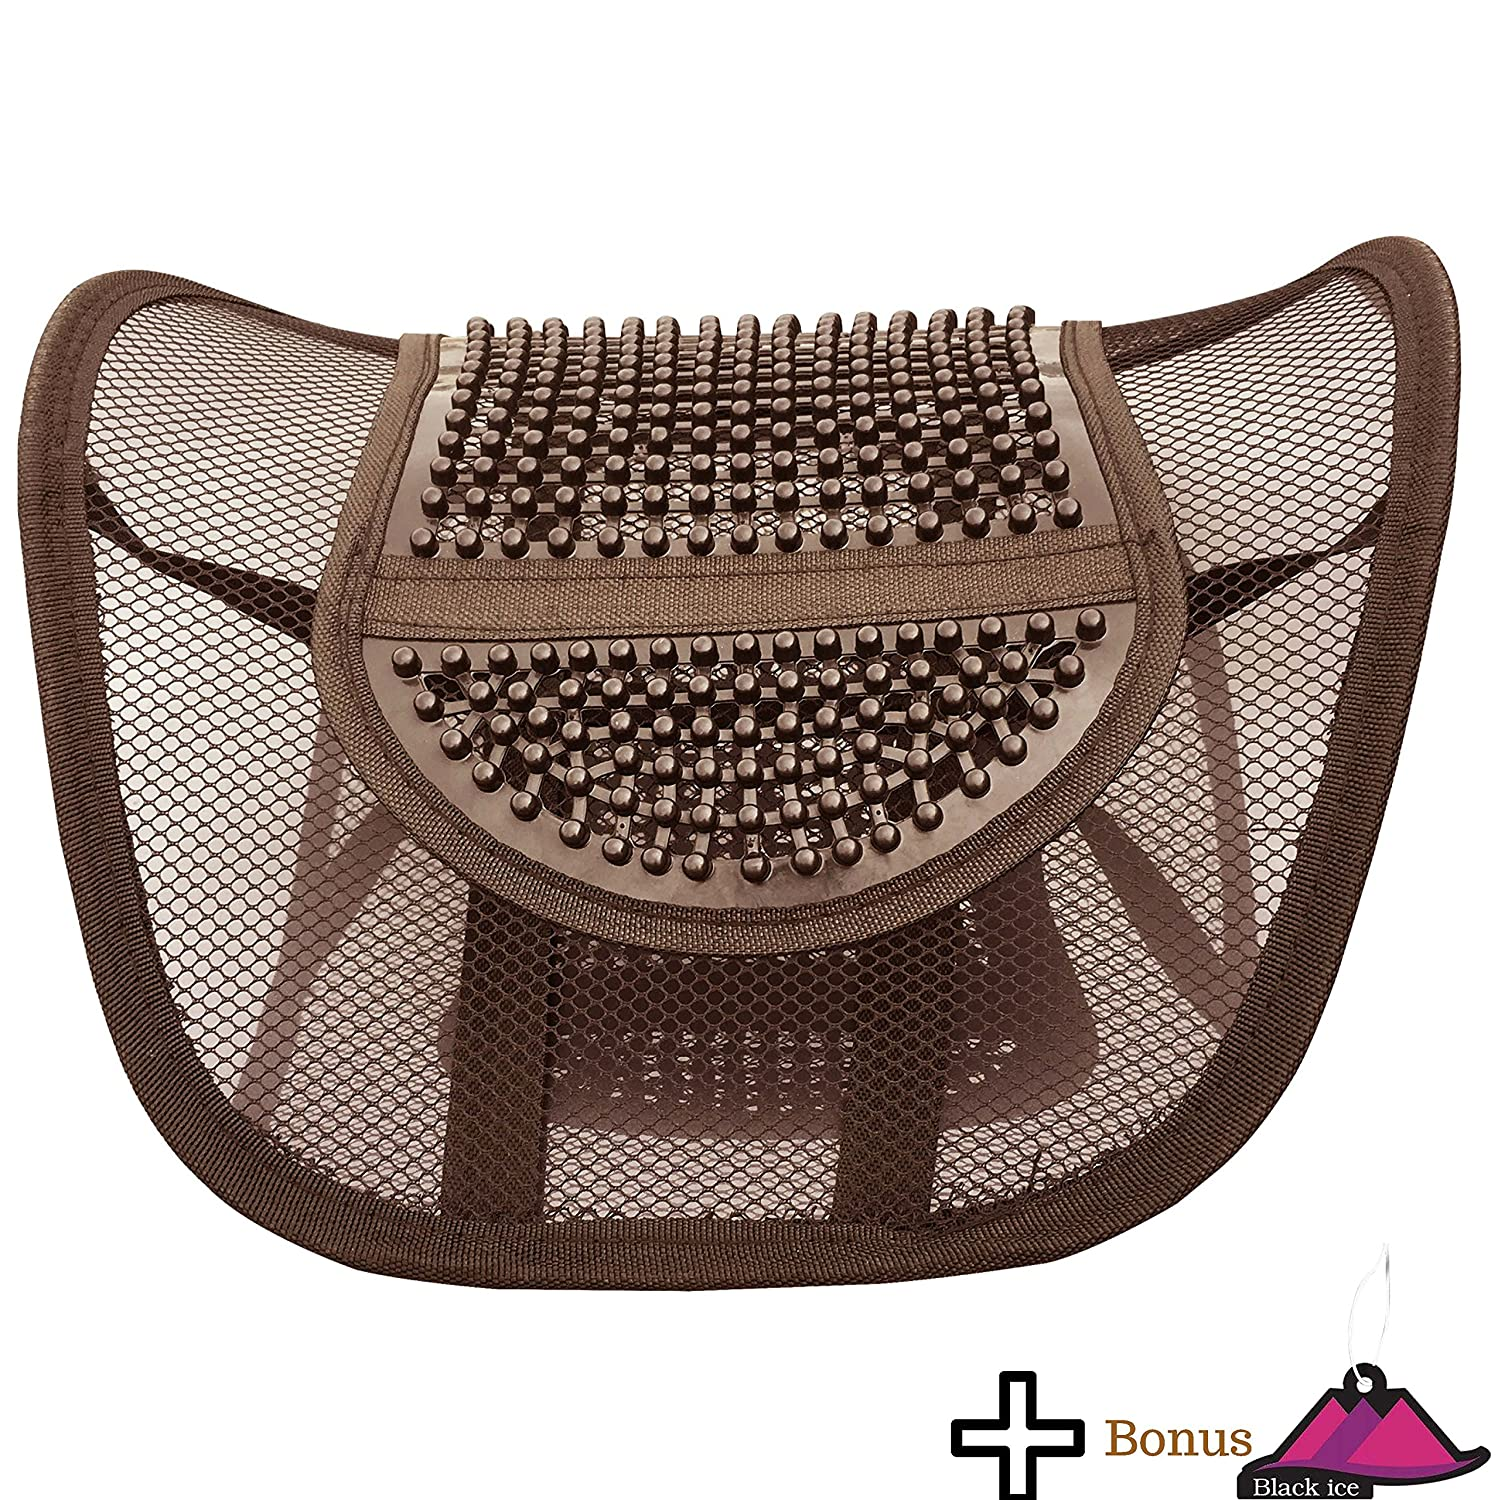 Amazon.com: Lumbar Mesh Back Support by FOMI Care | For Car, Office Chair, Home Alleviates Lower Pain, Promotes Healthy Posture, Corrects Spinal